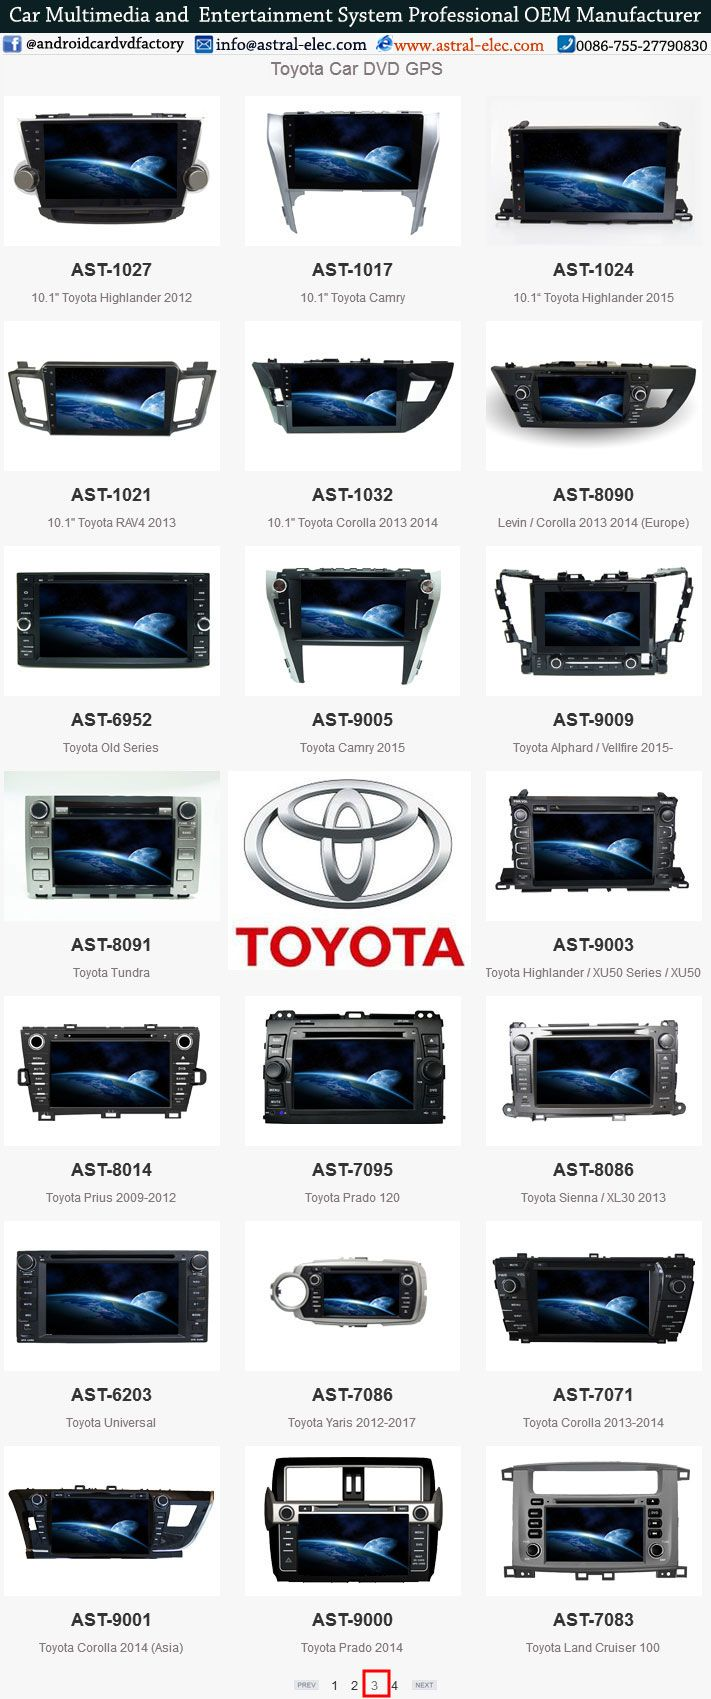 Toyota central multimidia 2 din, android system integration, car audio and video wholesale, inertial navigation system Astral Electronics Technology Co.,Ltd is a professional manufacturer in car multimedia navigation system Skype:joice8410 Website: www.astral-elec.com www.incarnavi.com Tel: 0086-755-27790830 E-mail:sales4@astral-elec.com